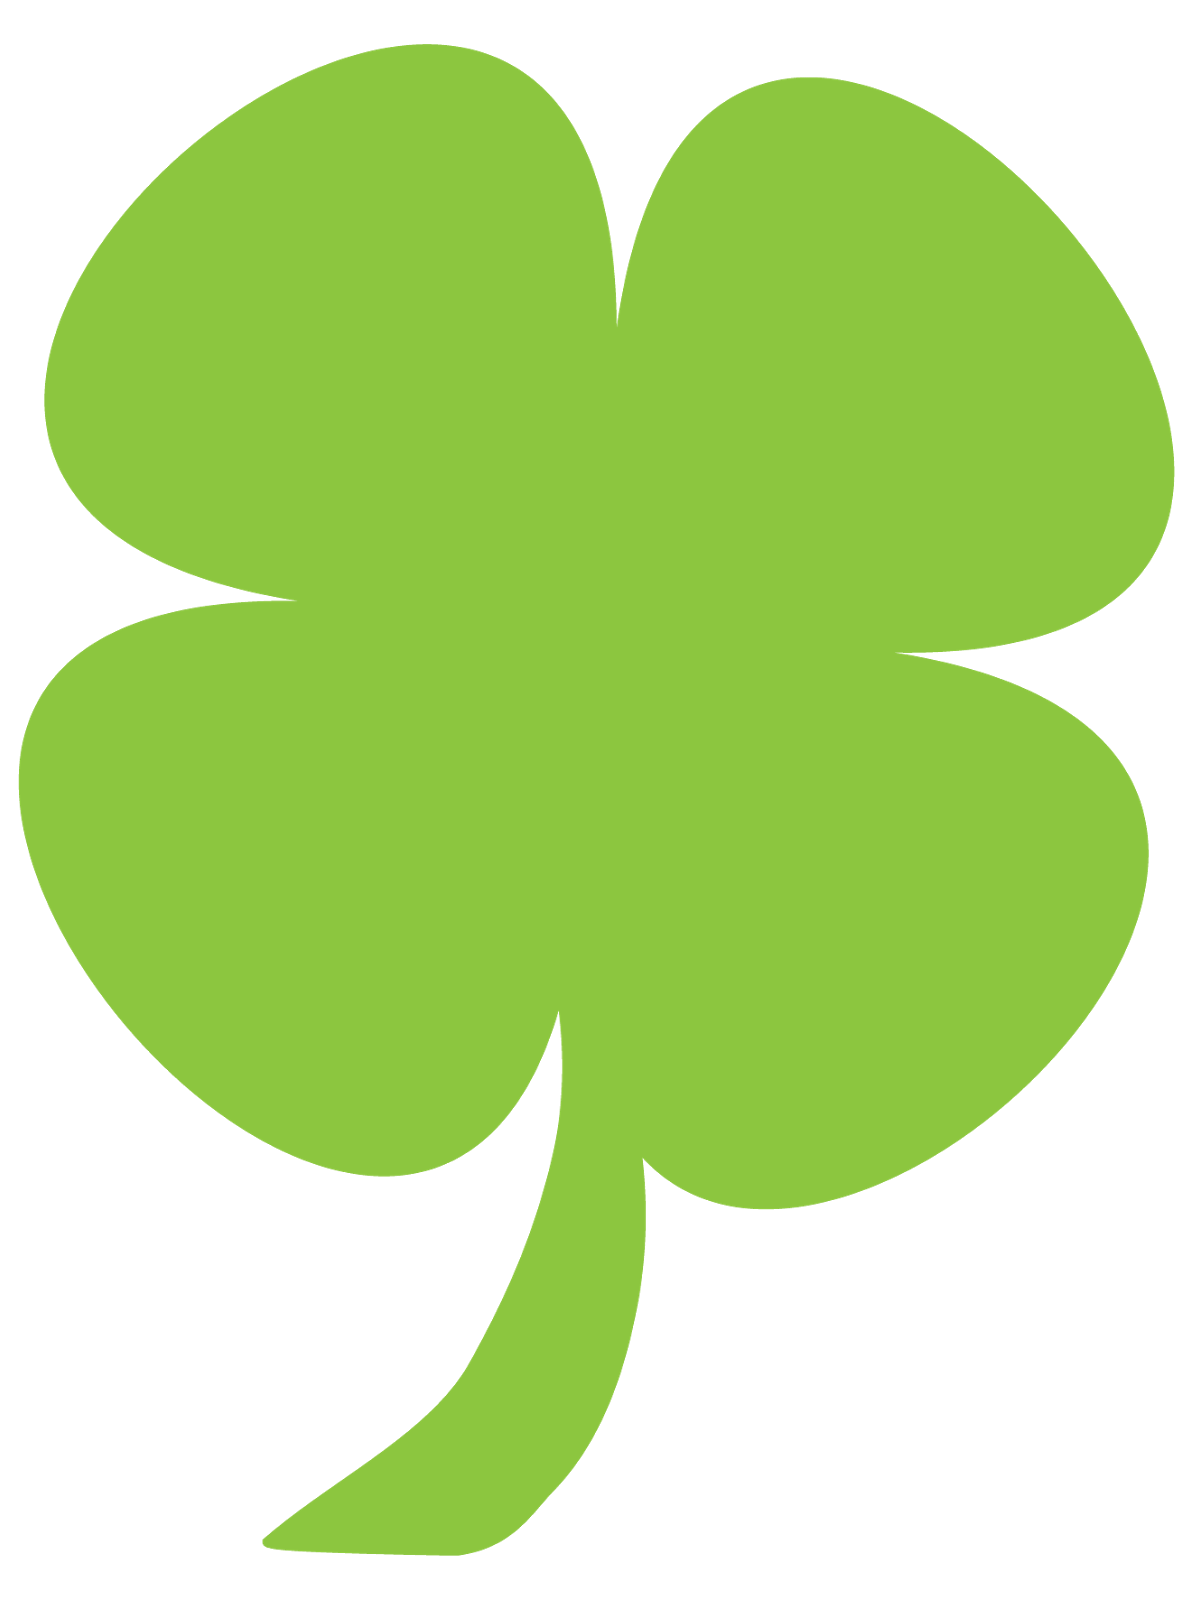 Gold Shamrock Png Leave a comment below guessing